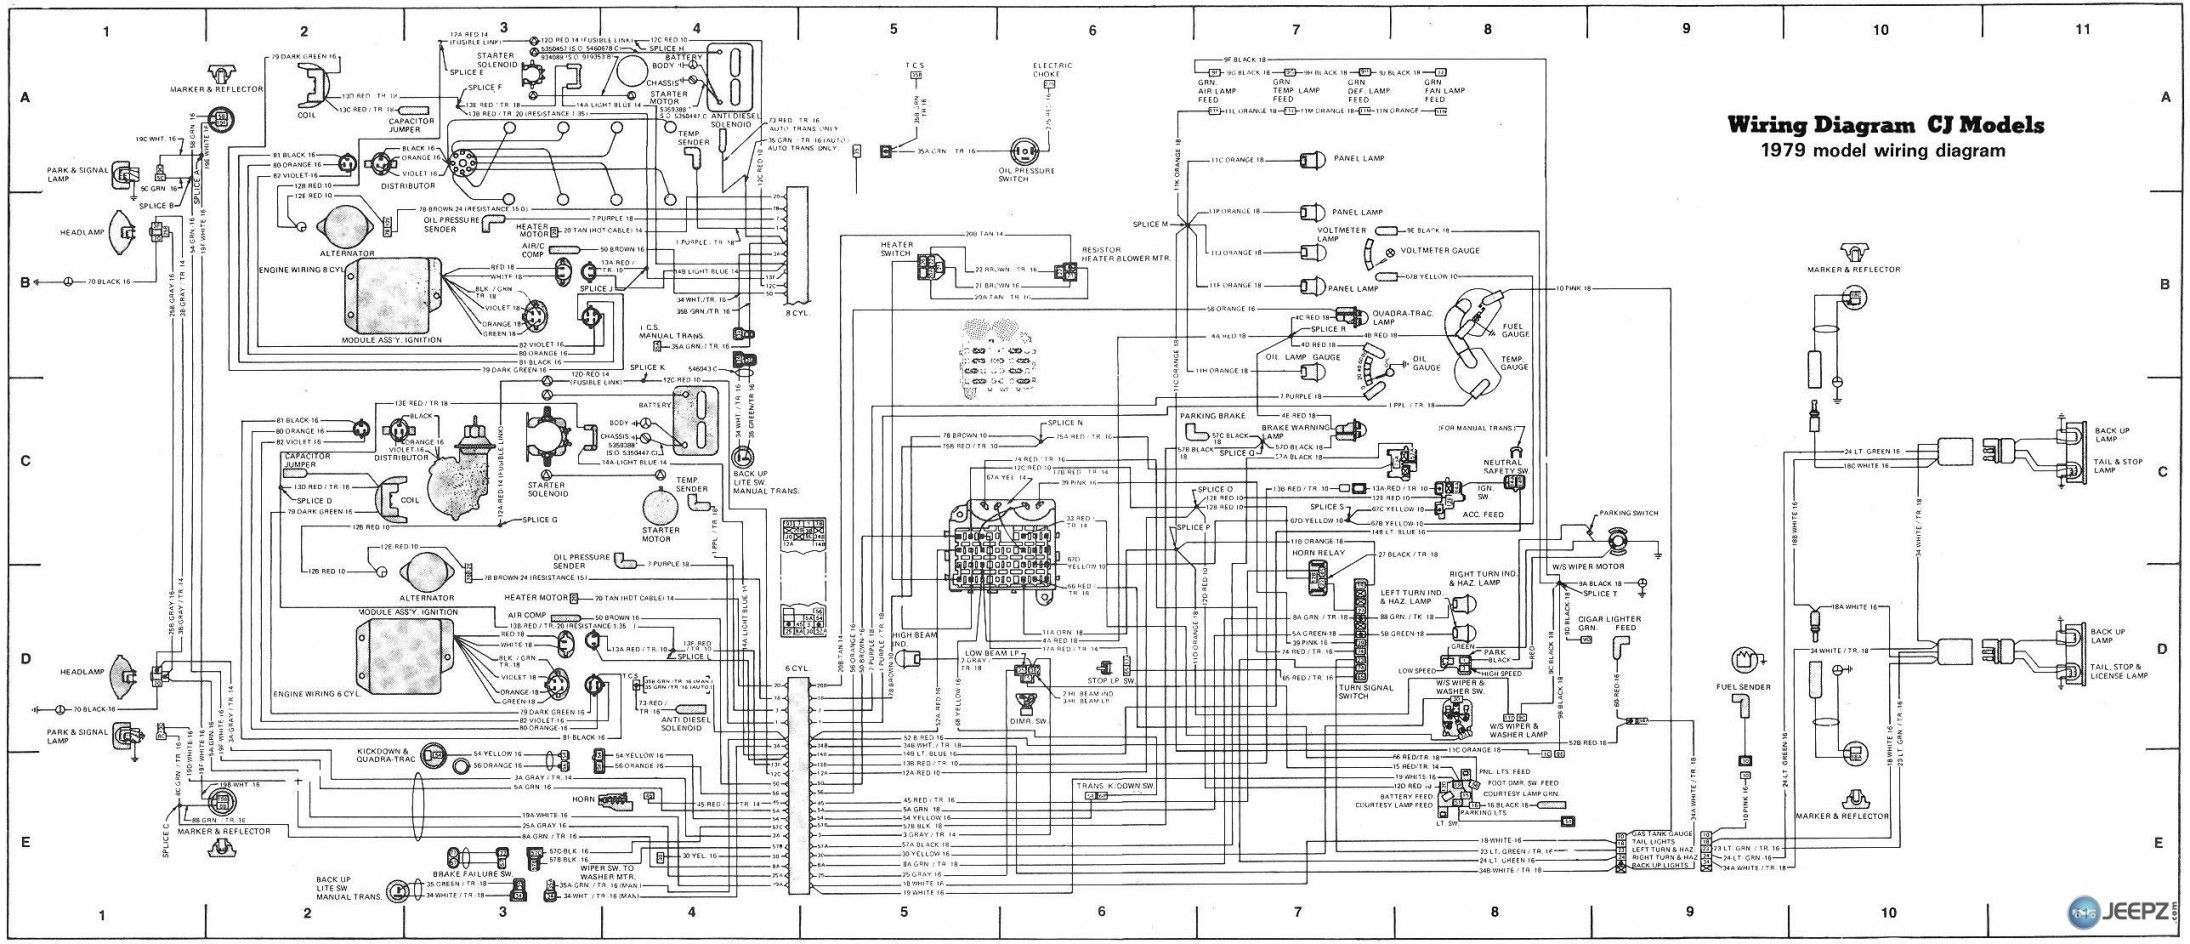 1985 Jeep J 20 Wiring Diagram - Wiring Diagram K7 Jeep J Wiring Harness Diagram on